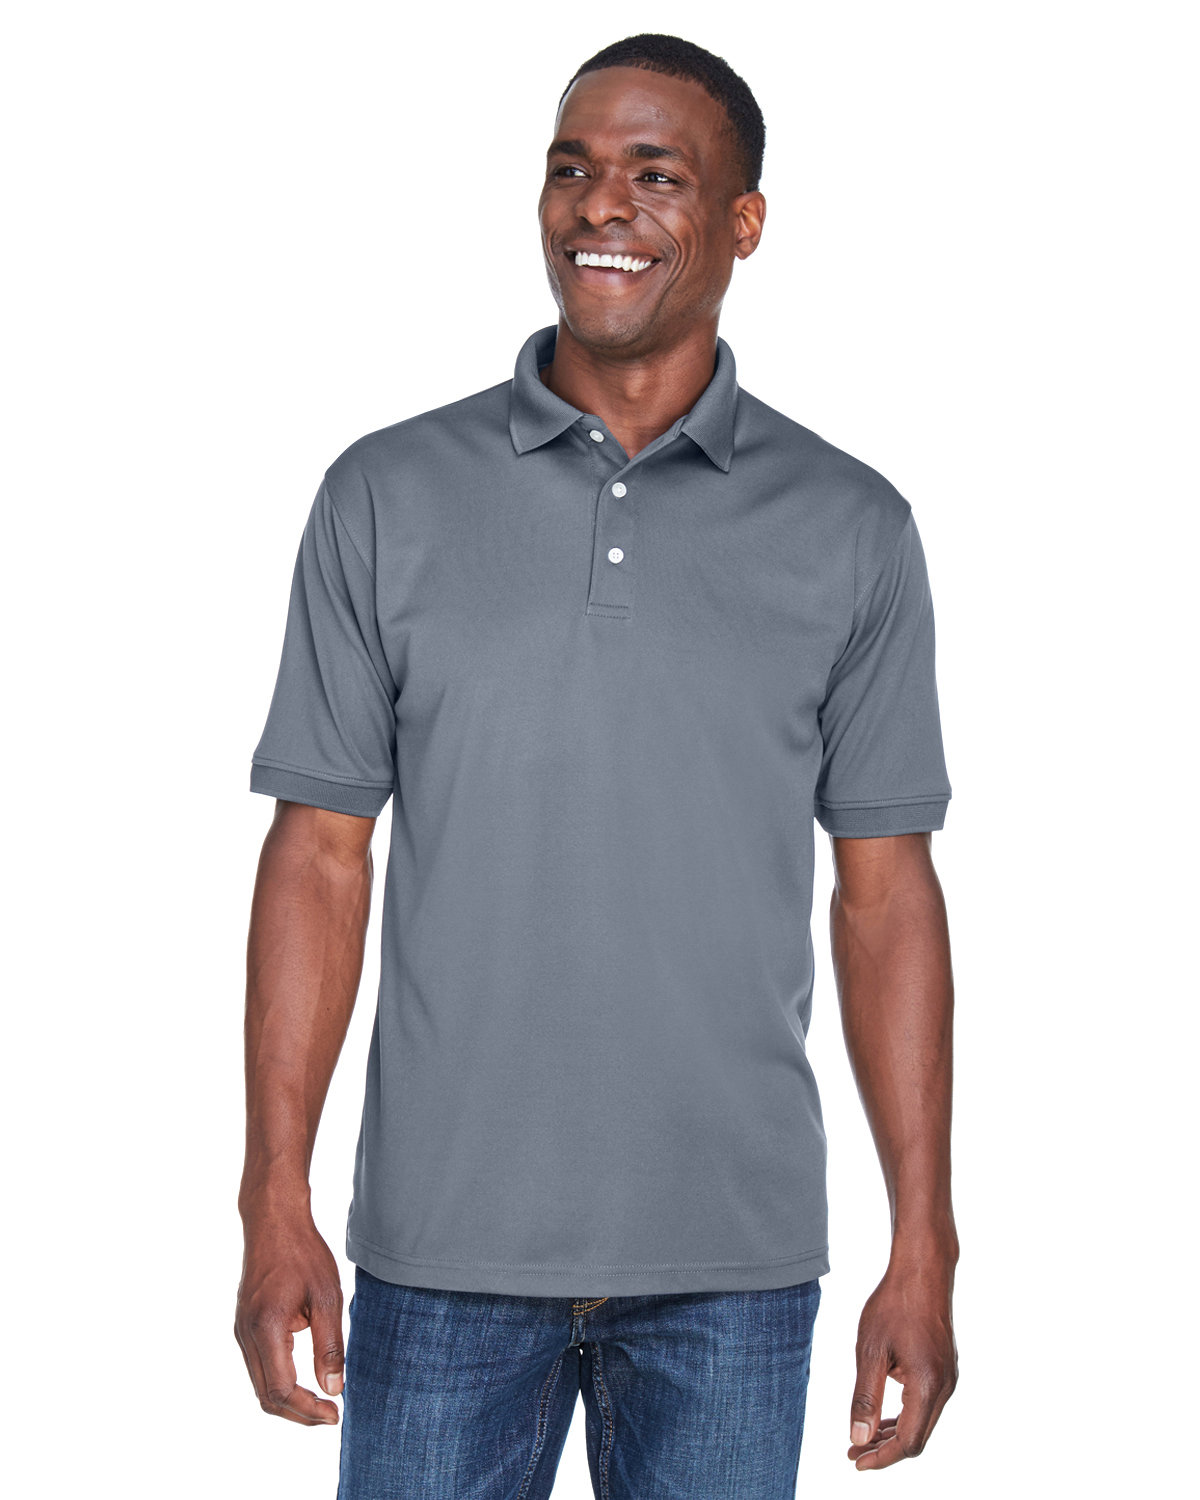 UltraClub Men's PlatinumPerformance Piqué Polo with TempControl Technology CHARCOAL